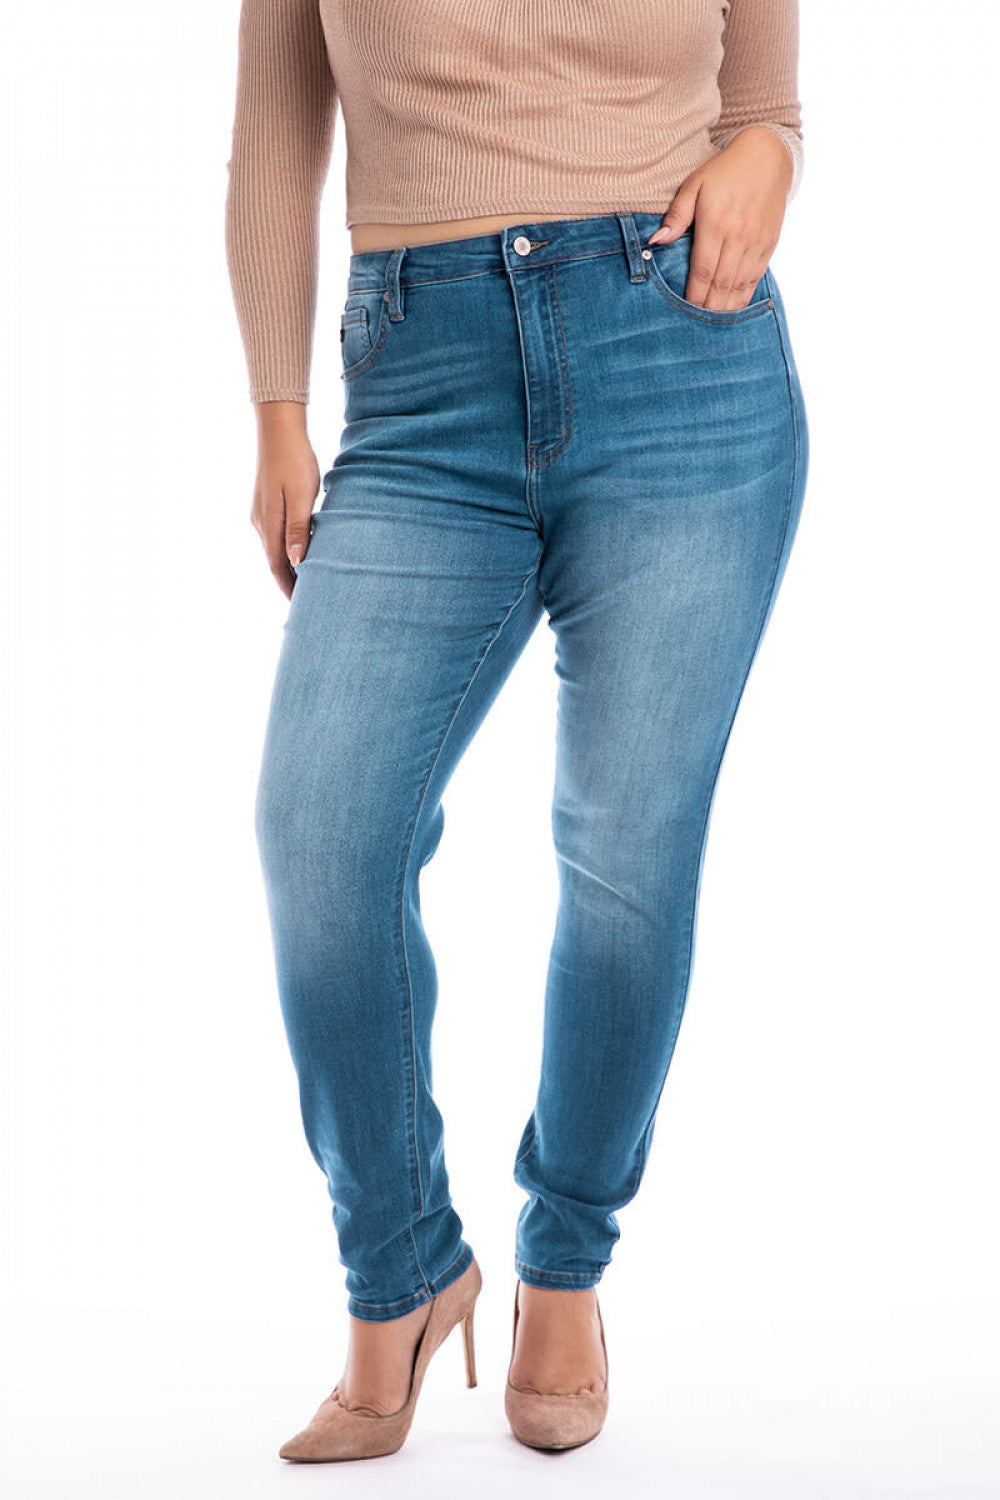 Light Wash Jeans Plus Size - KanCan